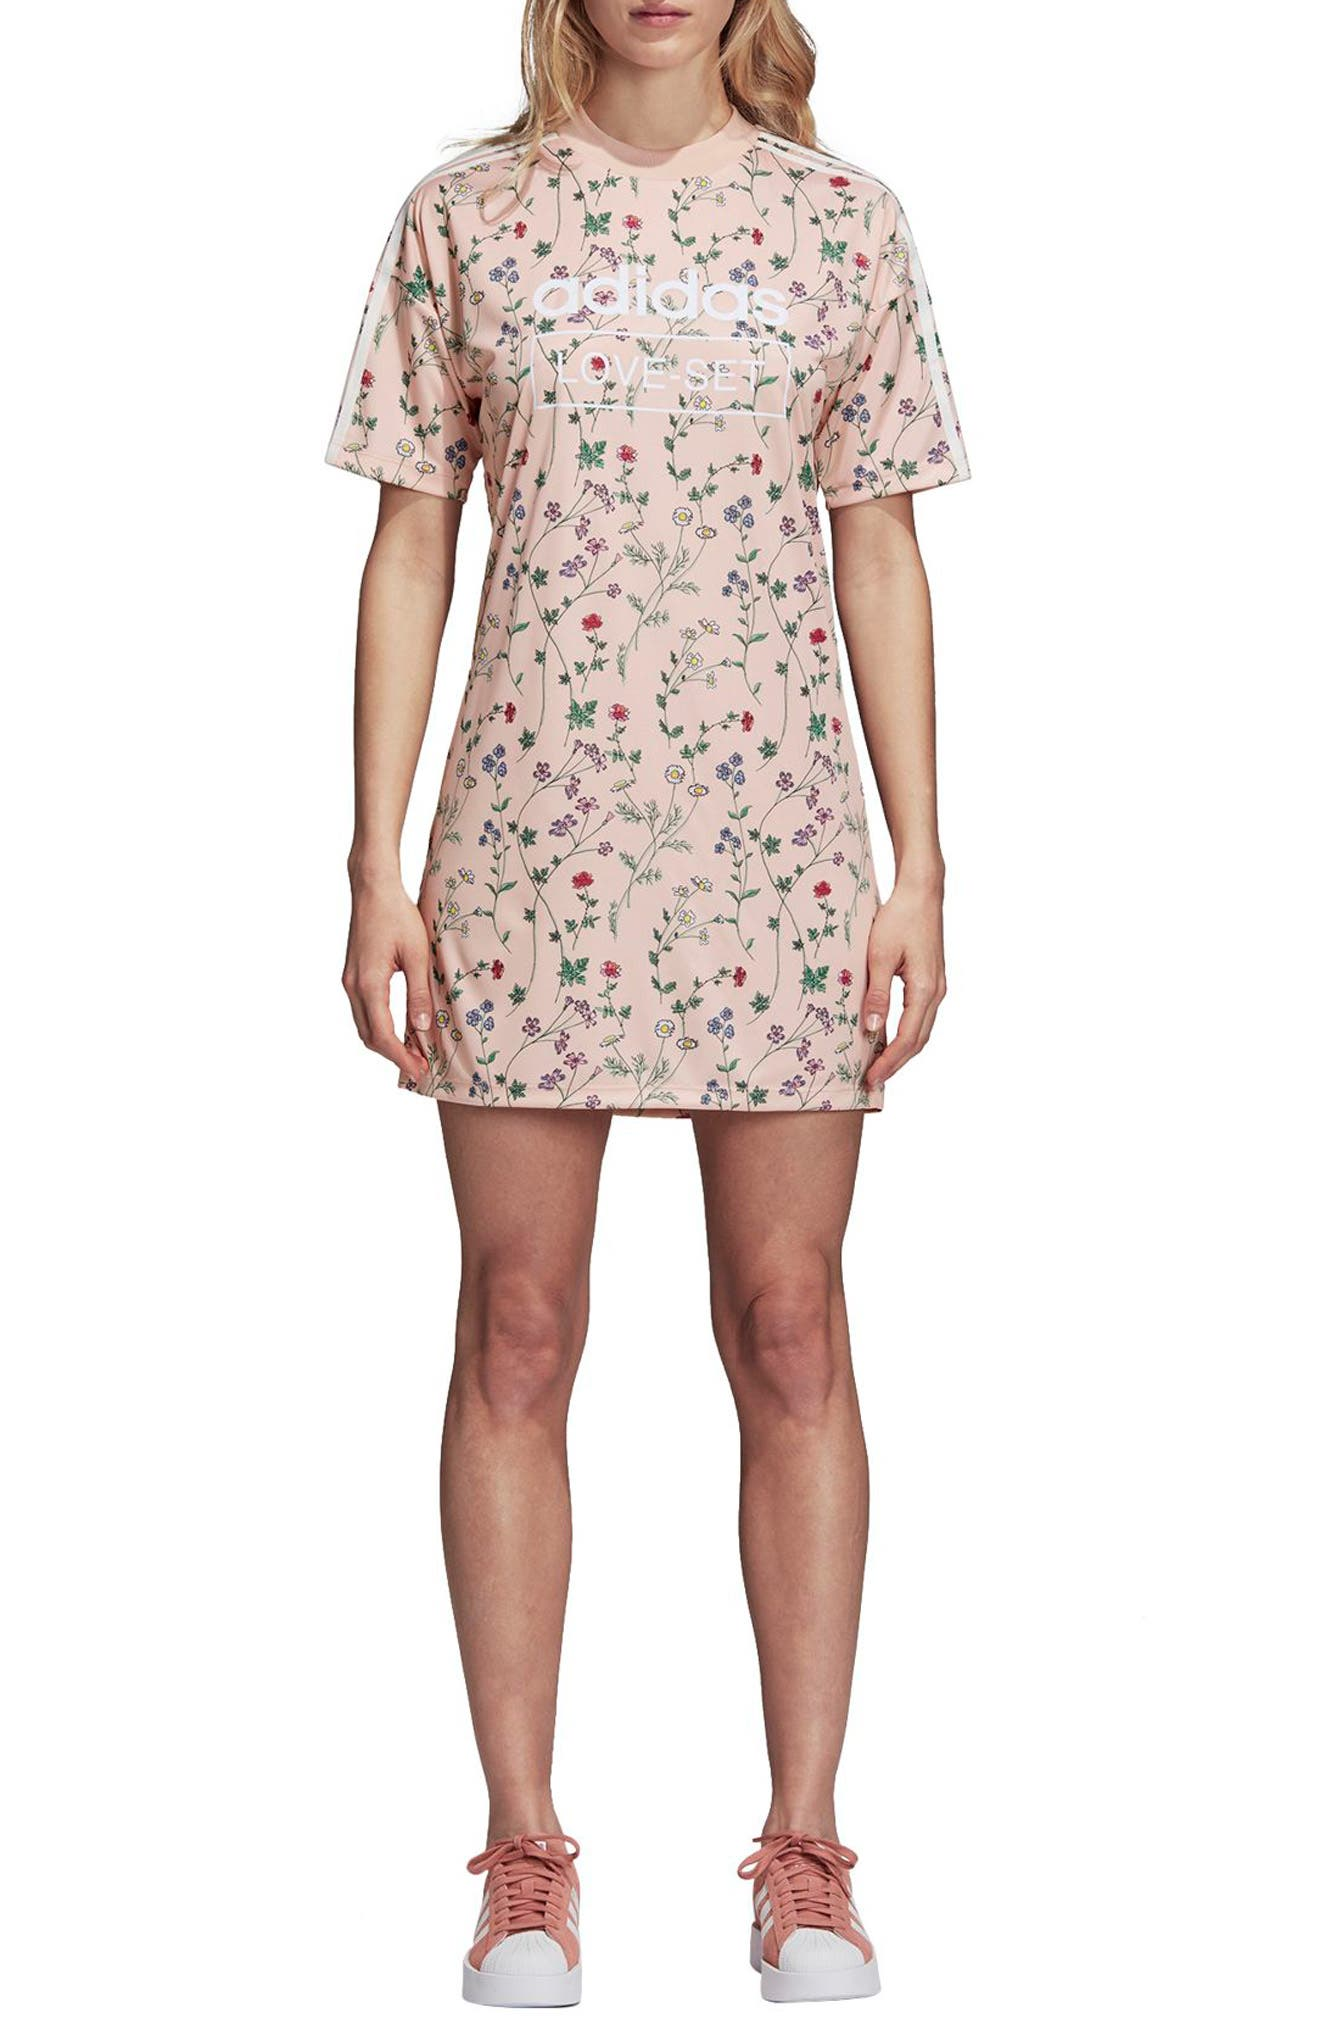 Originals Floral Graphic Dress,                         Main,                         color, Pink - Flower Aop